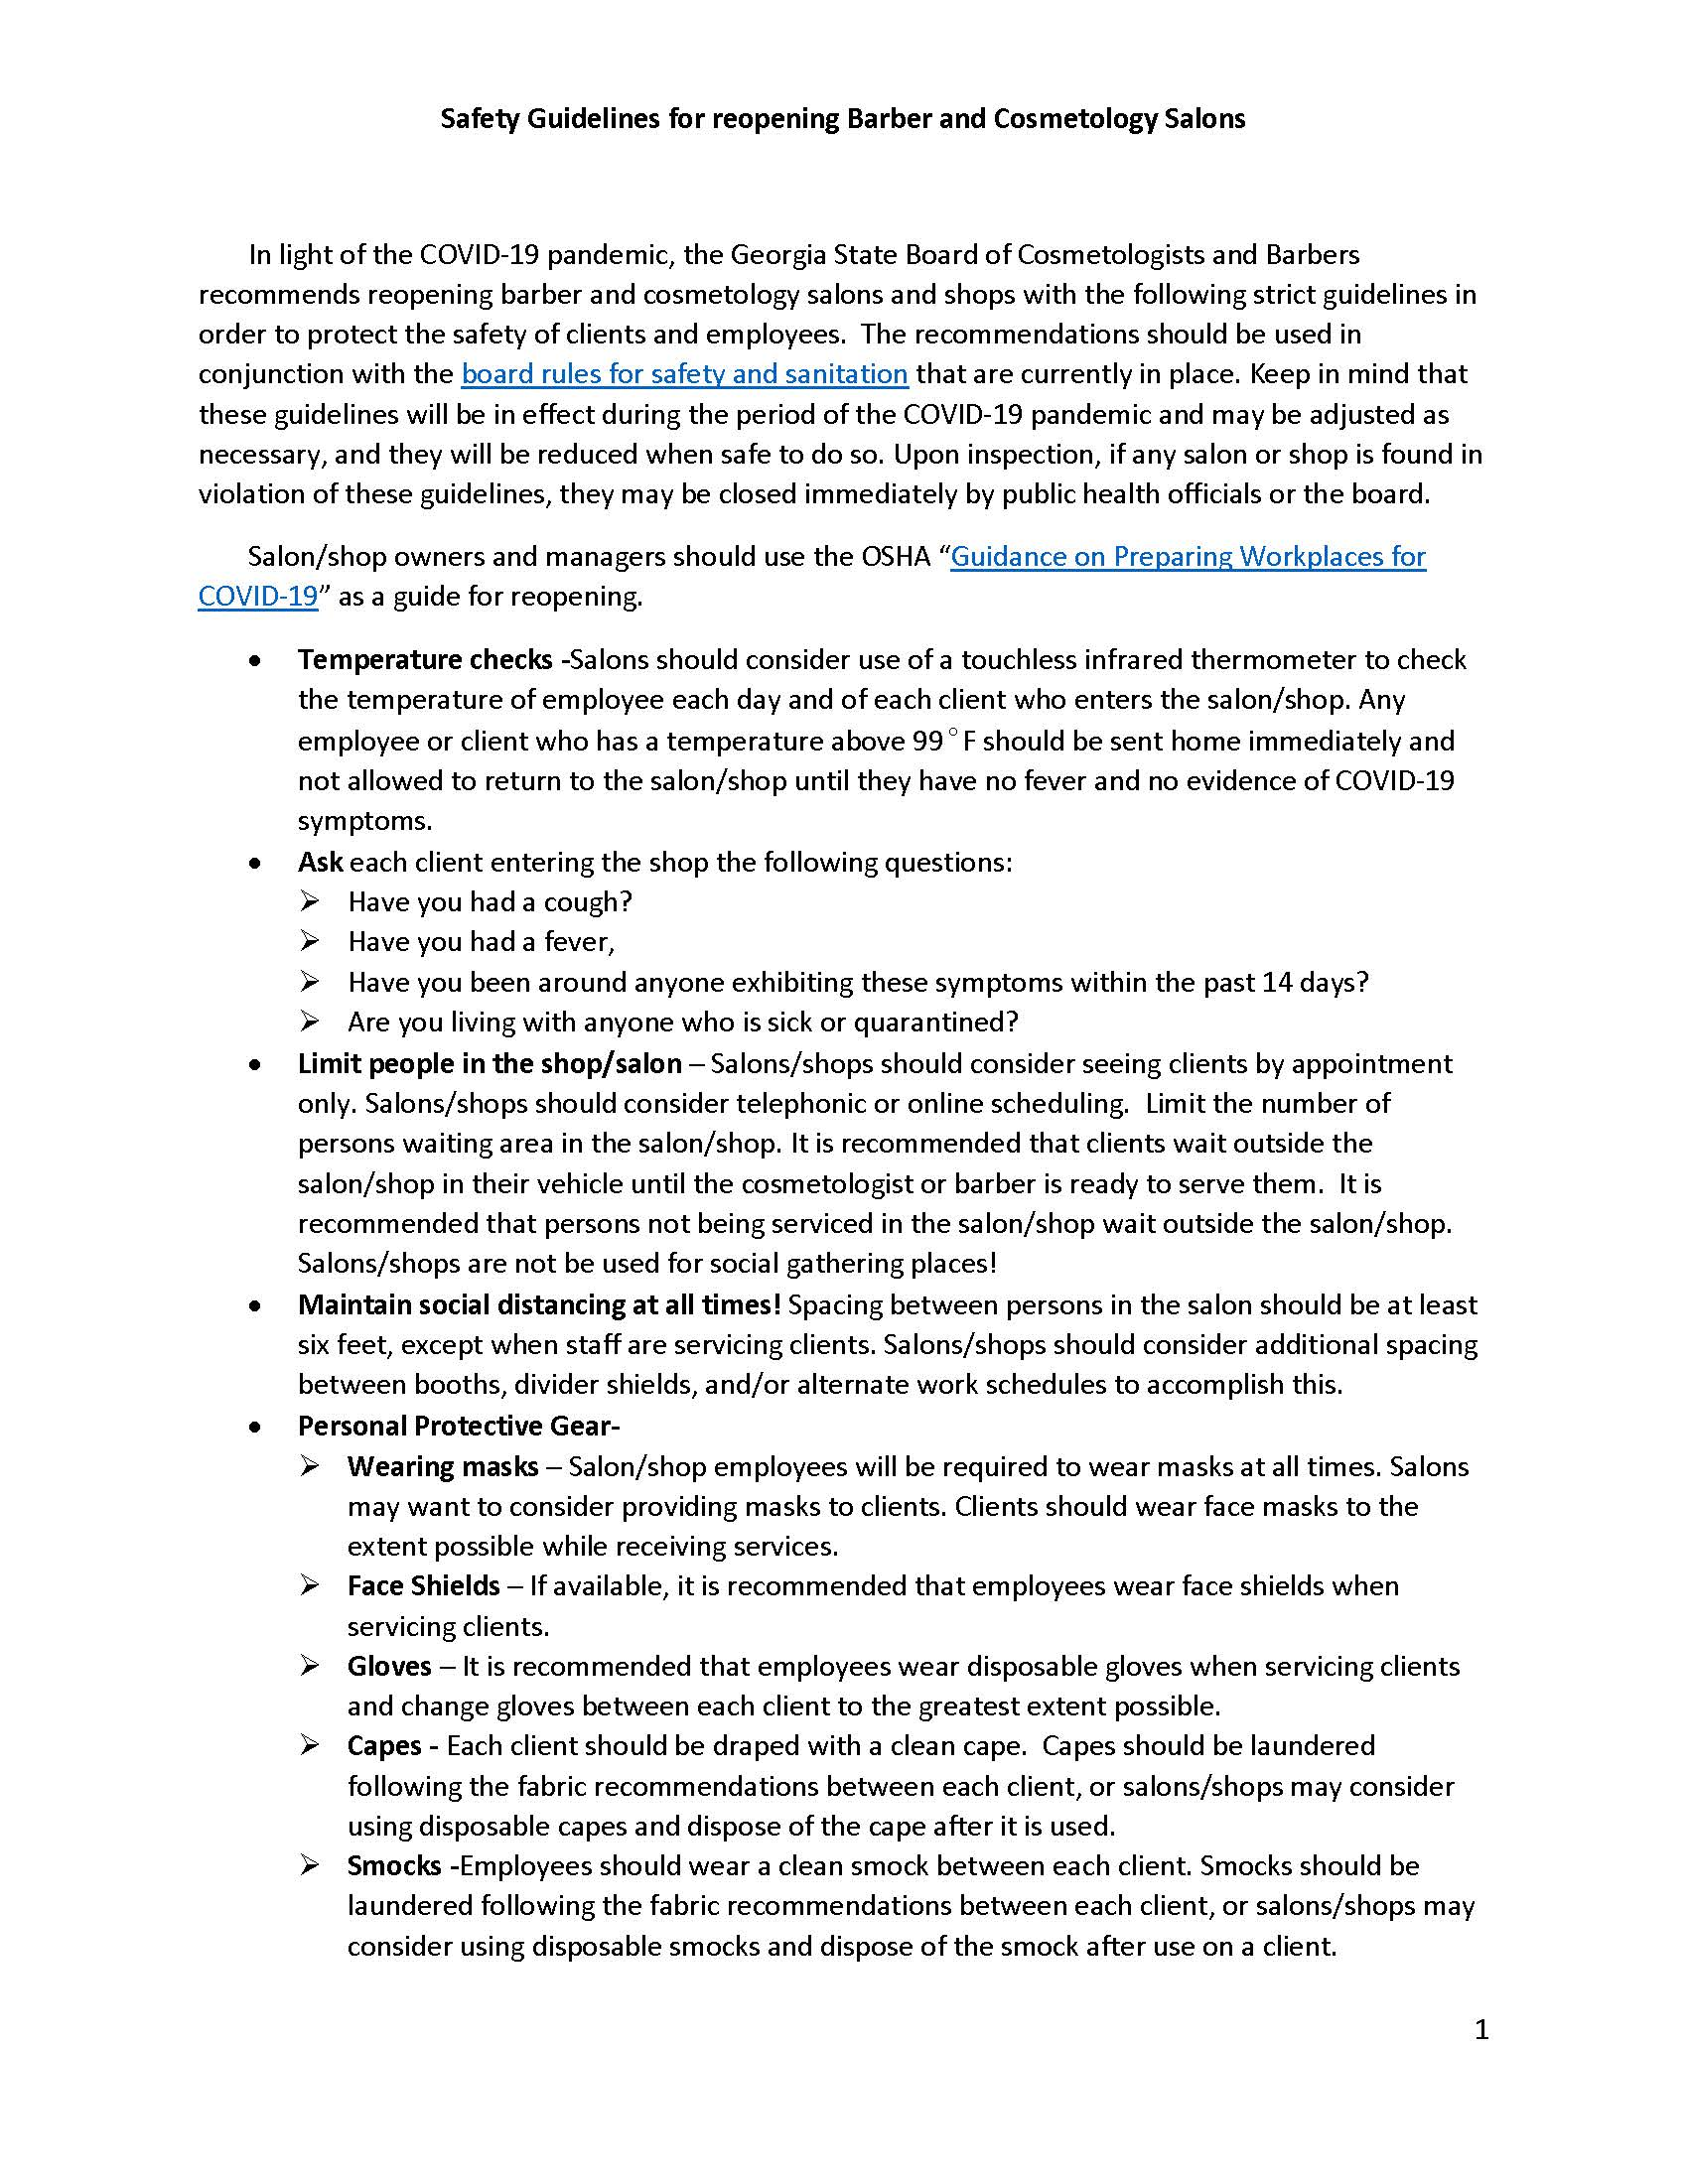 28 Safety Guidelines for Return to Work - COVID19_Page_1